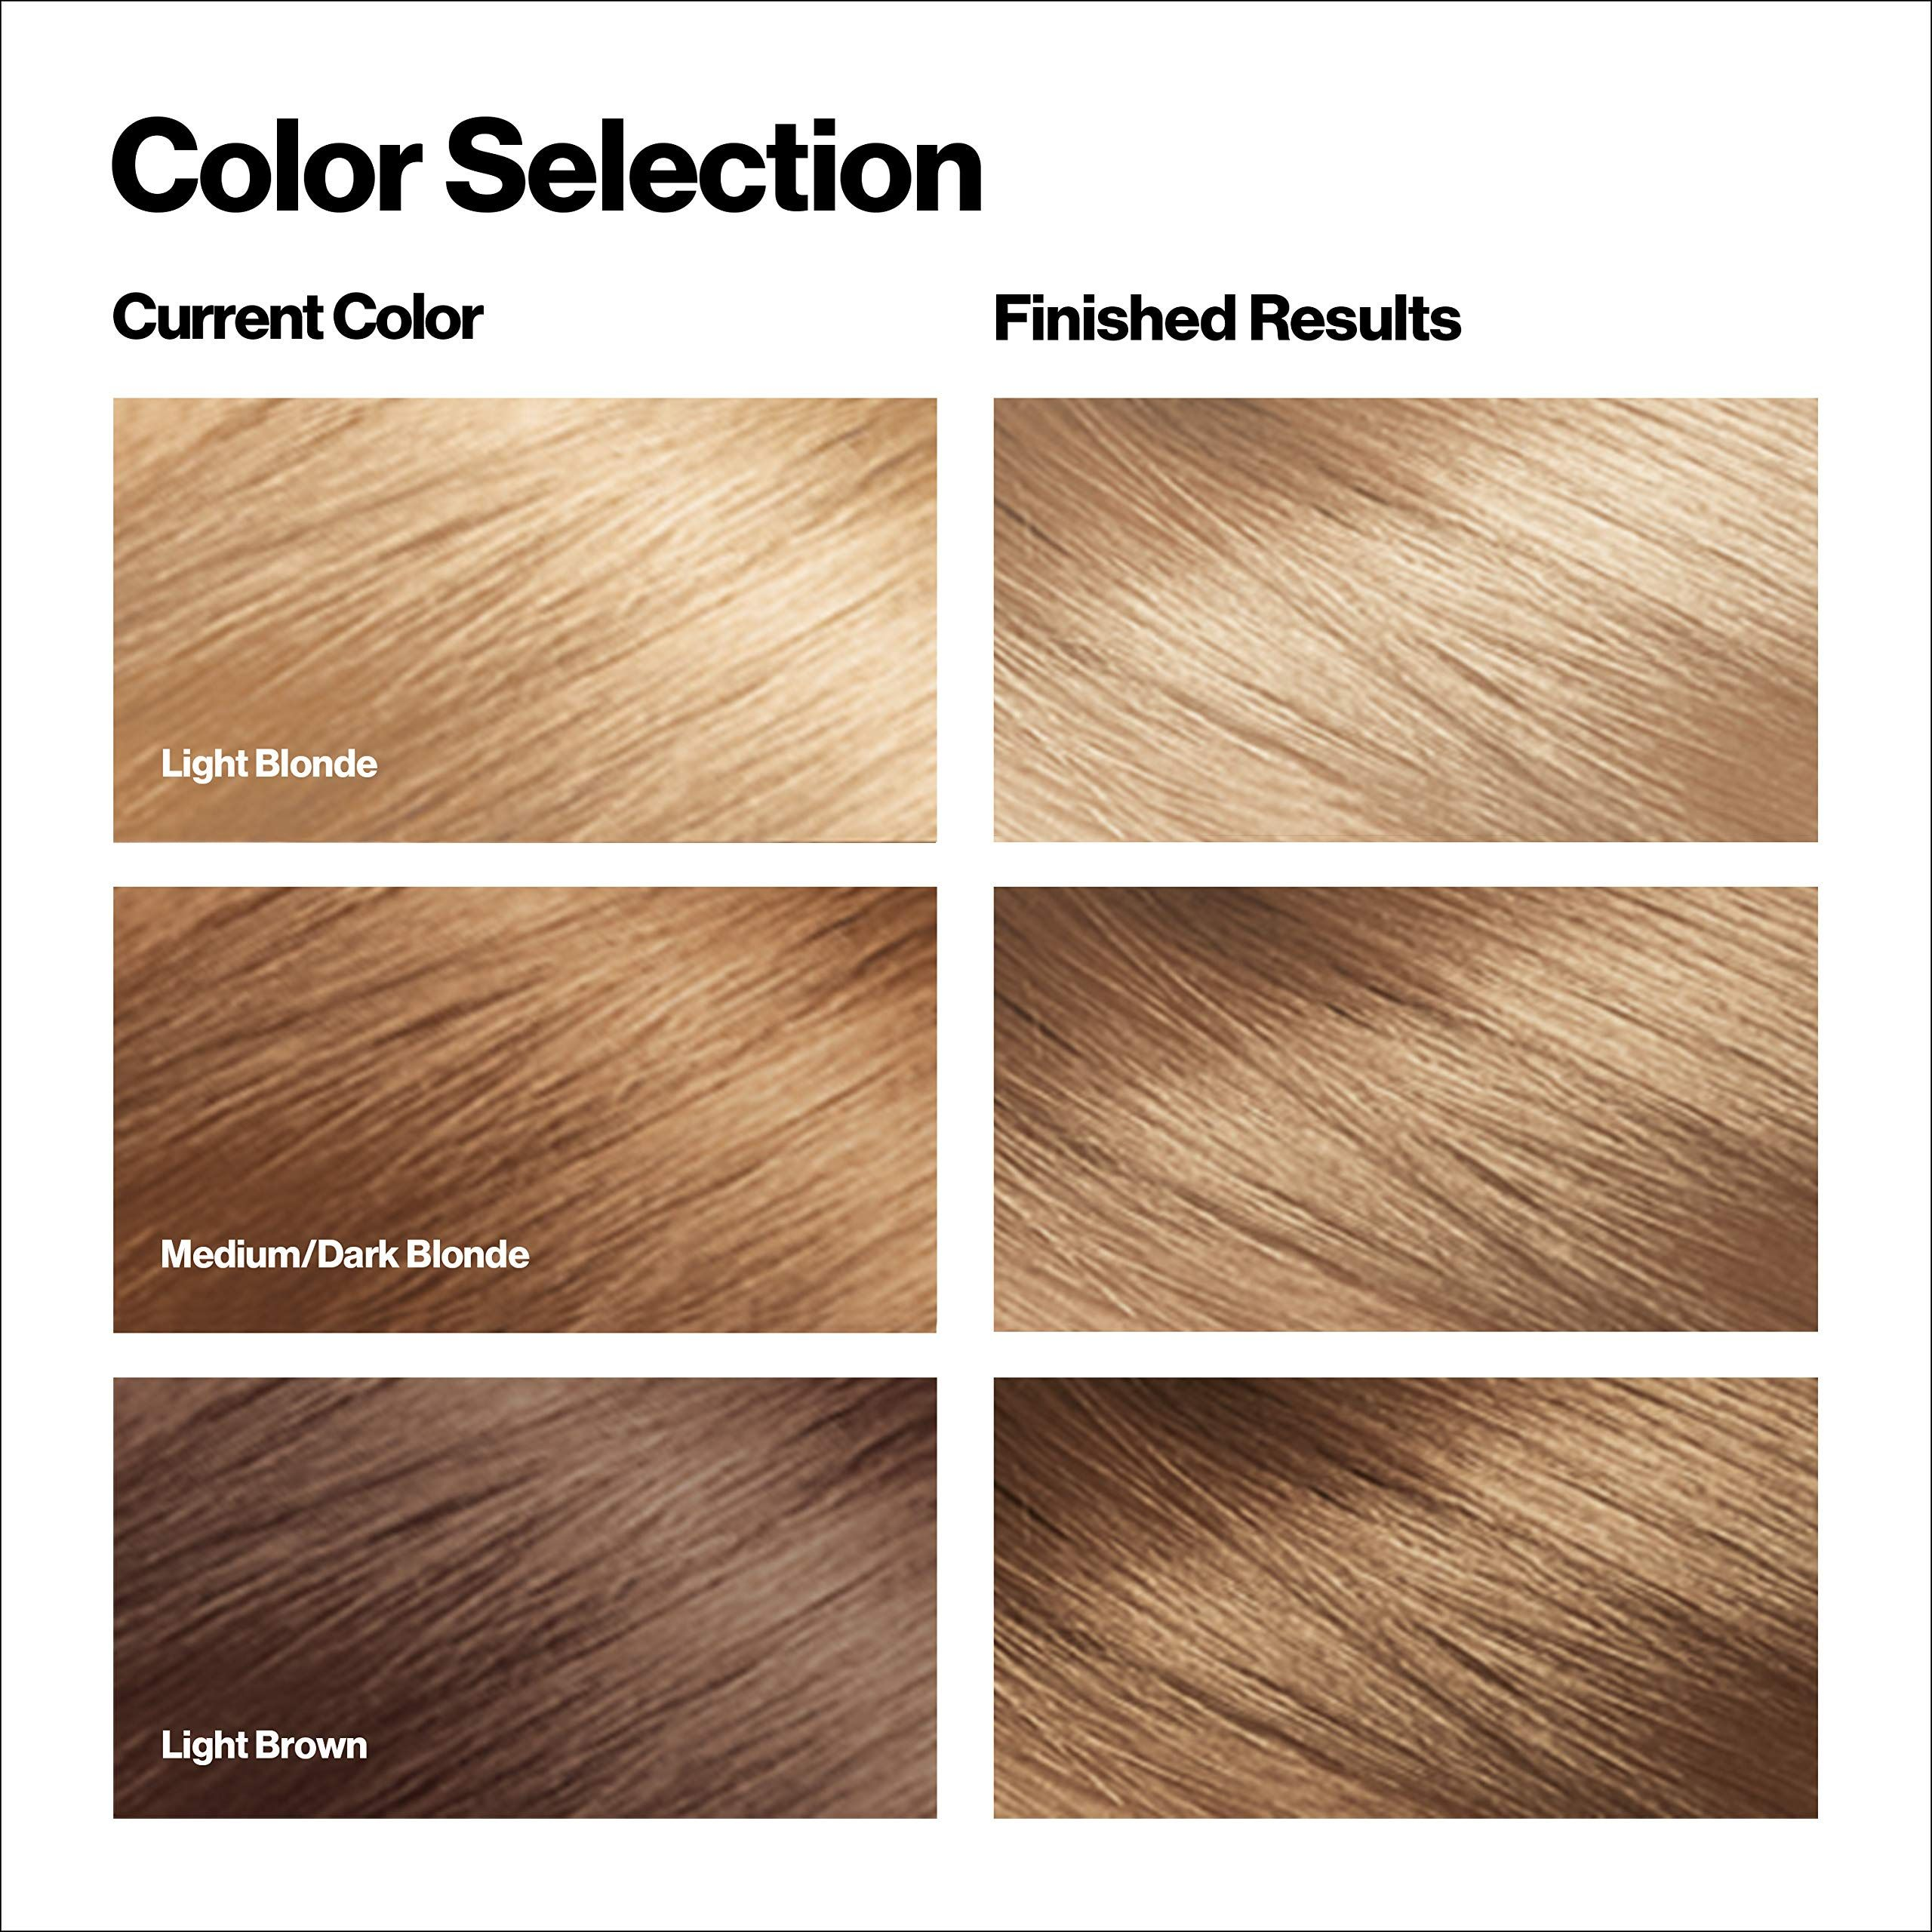 Revlon Total Color Hair Color You Can Find More Details By Visiting The Image Link It Is An Affil In 2020 Brown Hair Color Chart Grey Hair Coverage Hair Color Chart